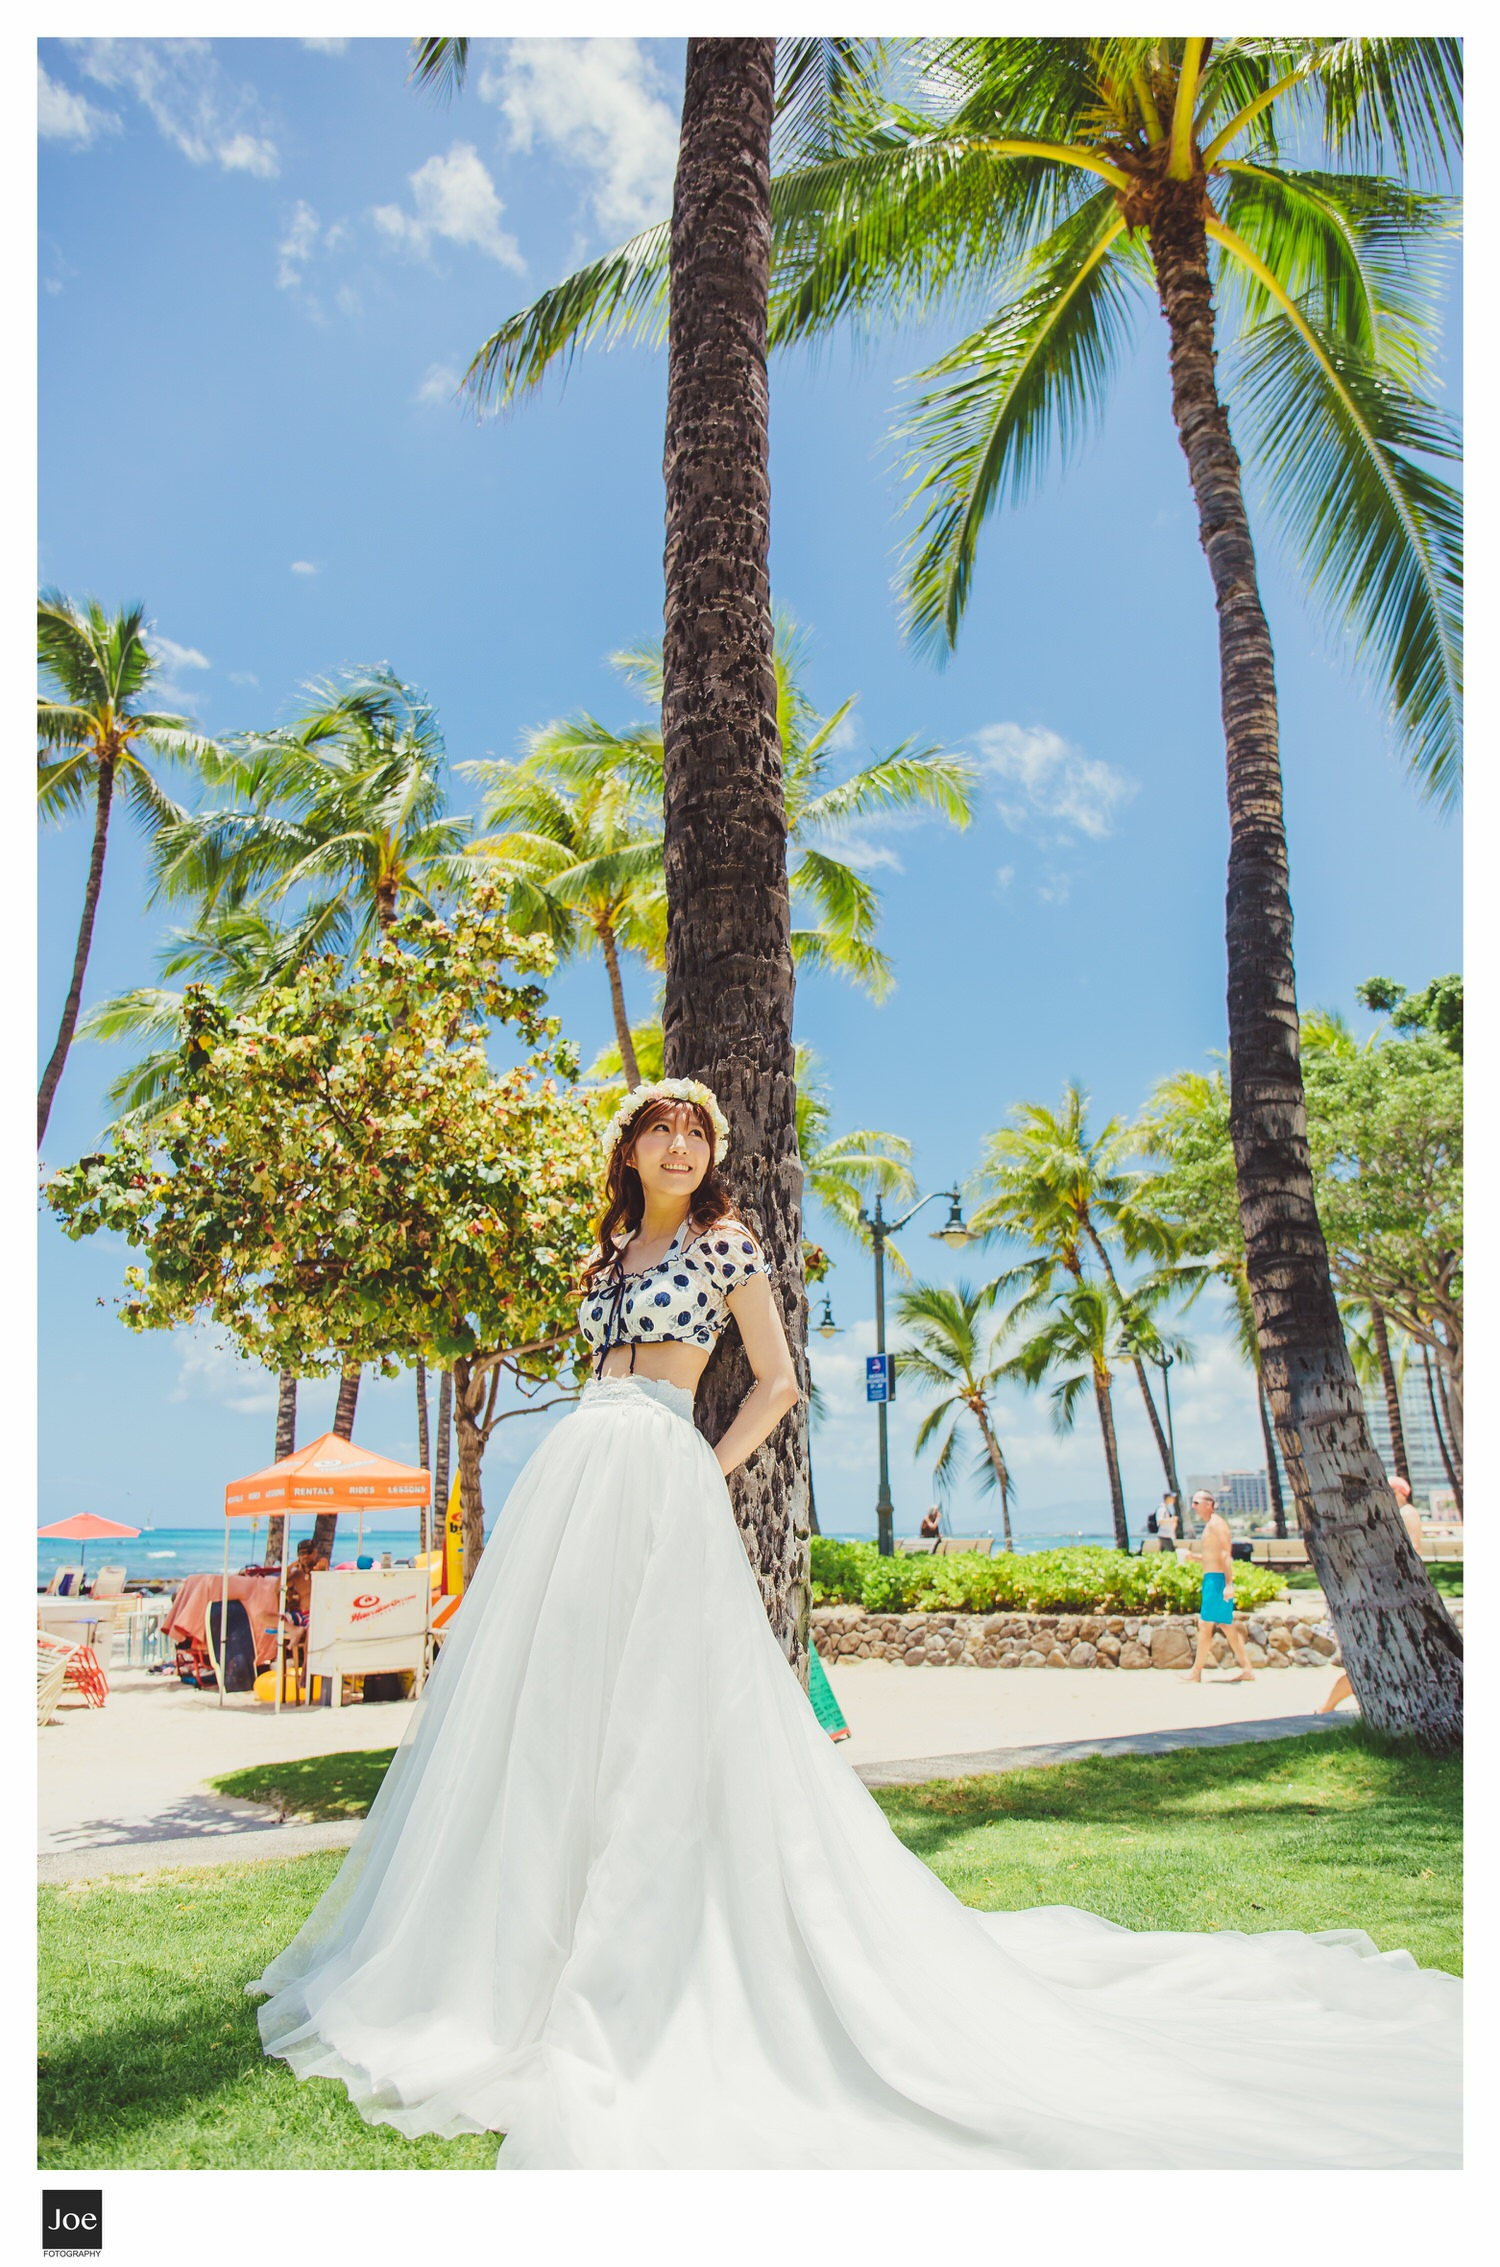 065-waikiki-beach-hawaii-pre-wedding-tiffany-tony-joe-fotography.jpg